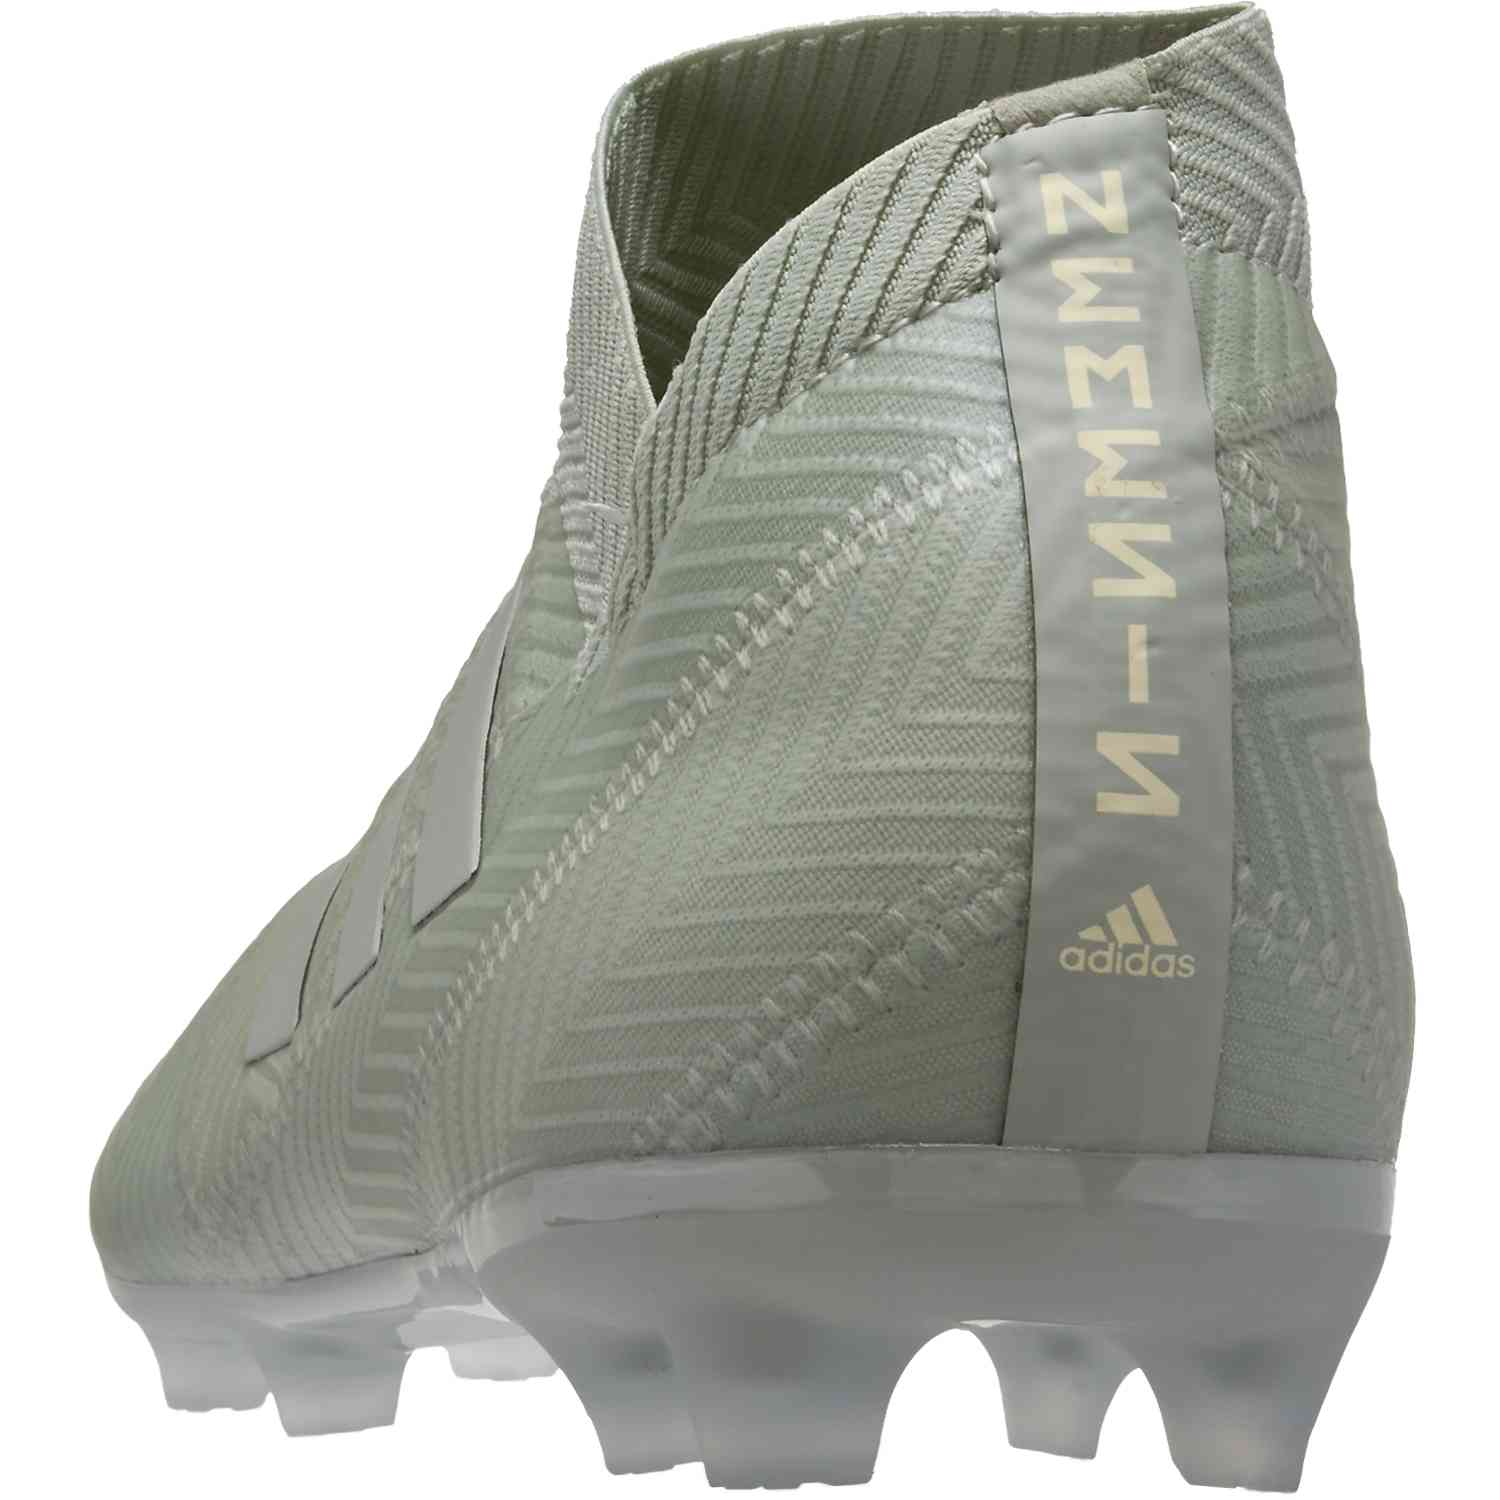 super popular ed438 254f5 Home  Youth Soccer  Youth Soccer Cleats